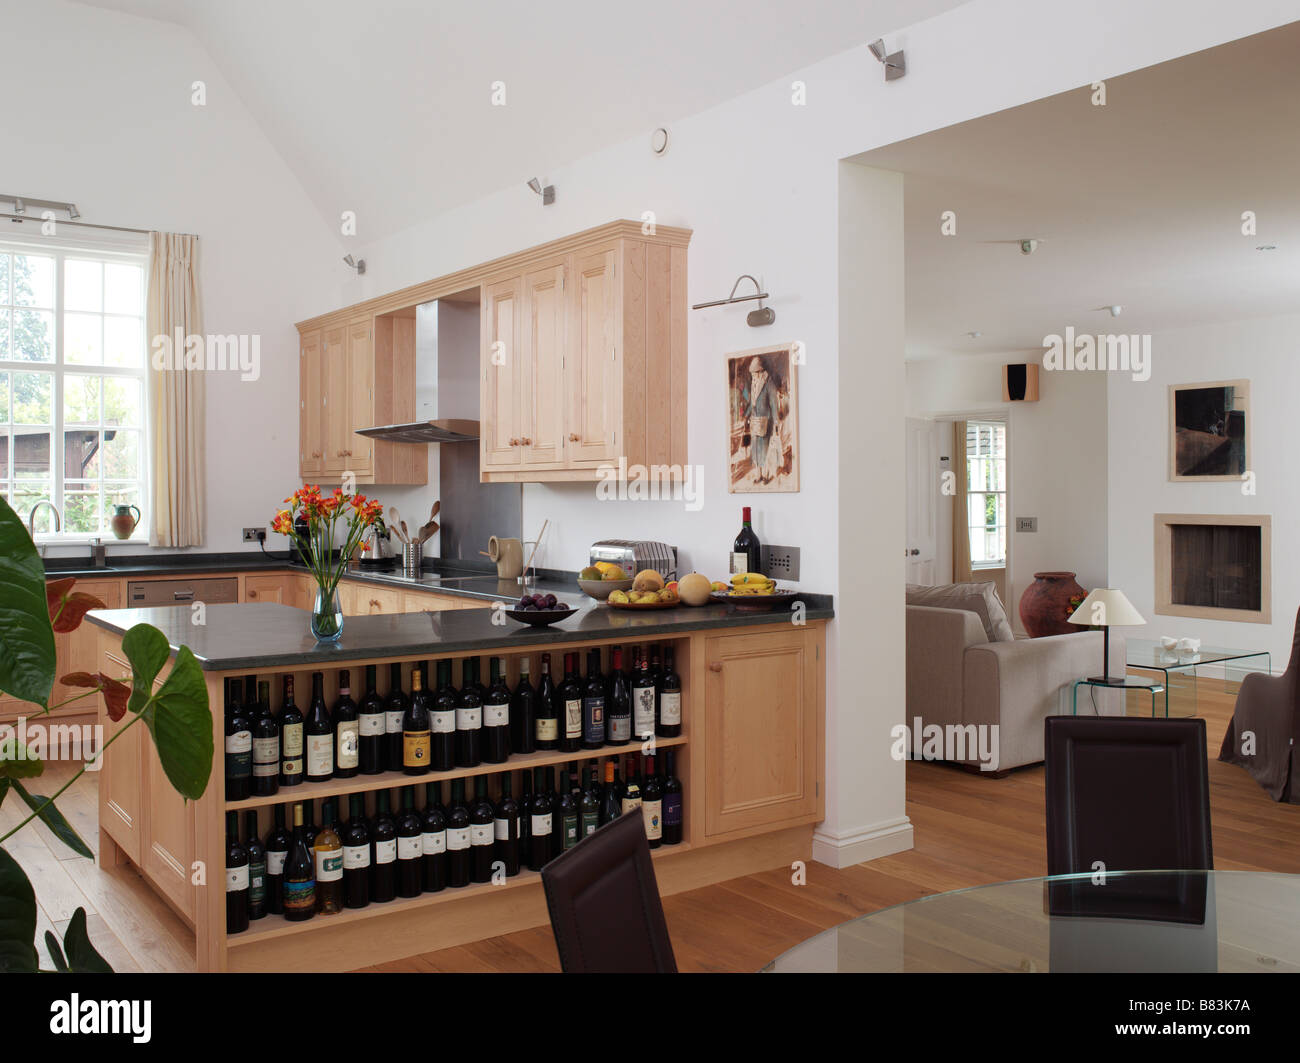 Open Plan Kitchen And Dining Room With Wine Shelves View Through To Living